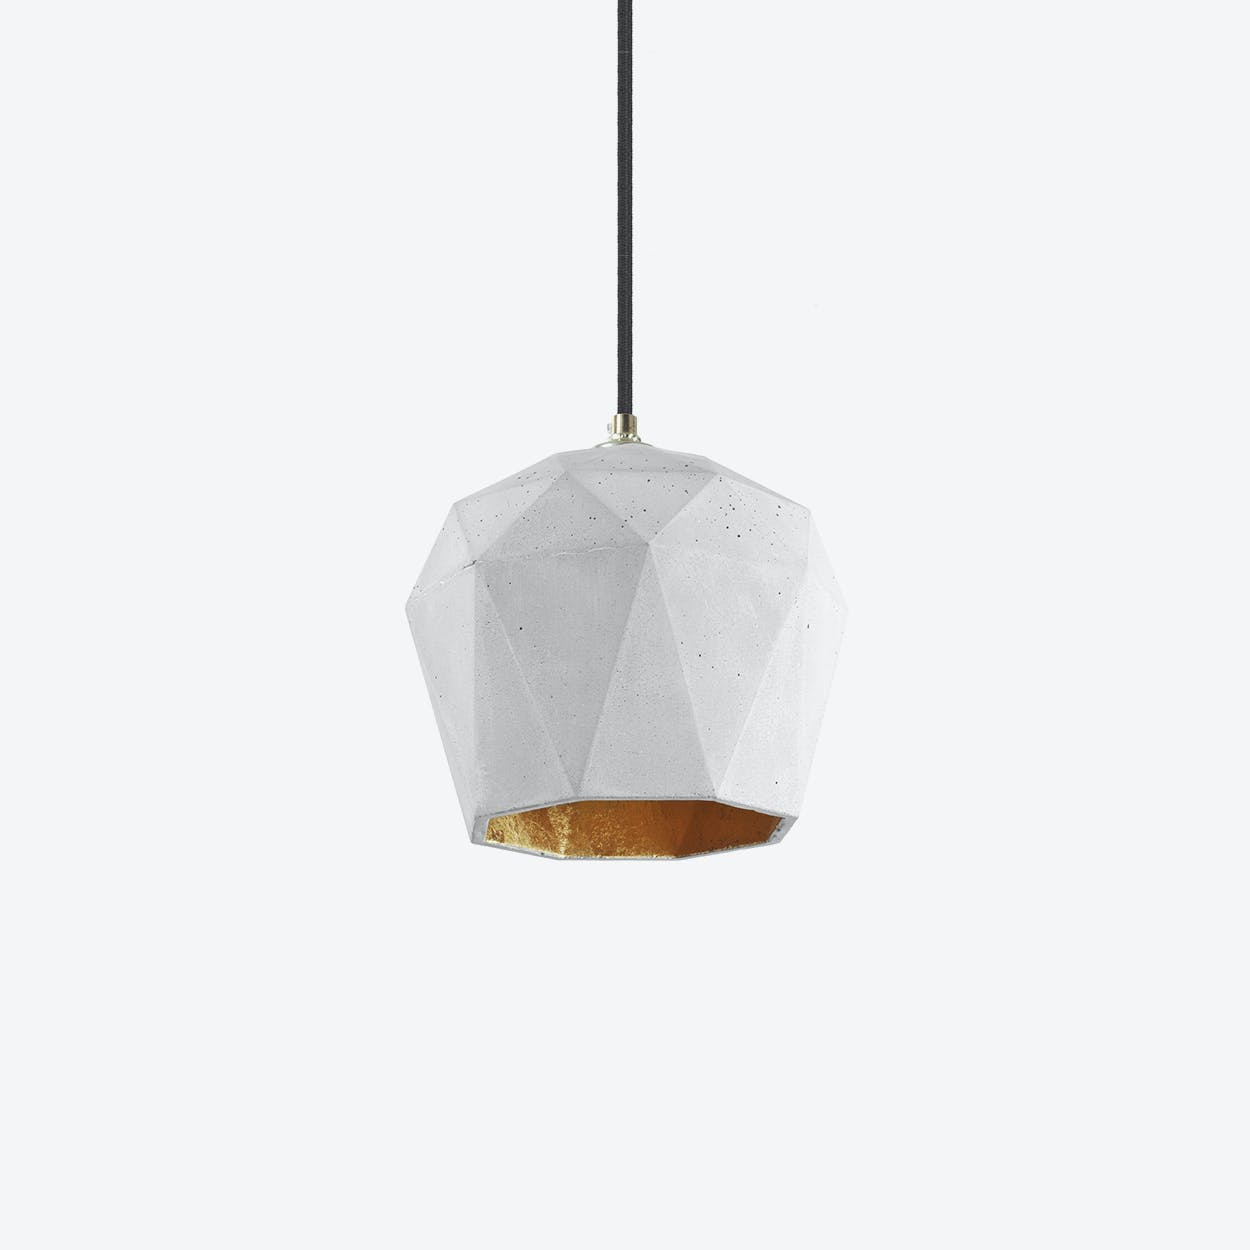 Concrete Pendant Light Triangle T3 in Light Grey and Gold